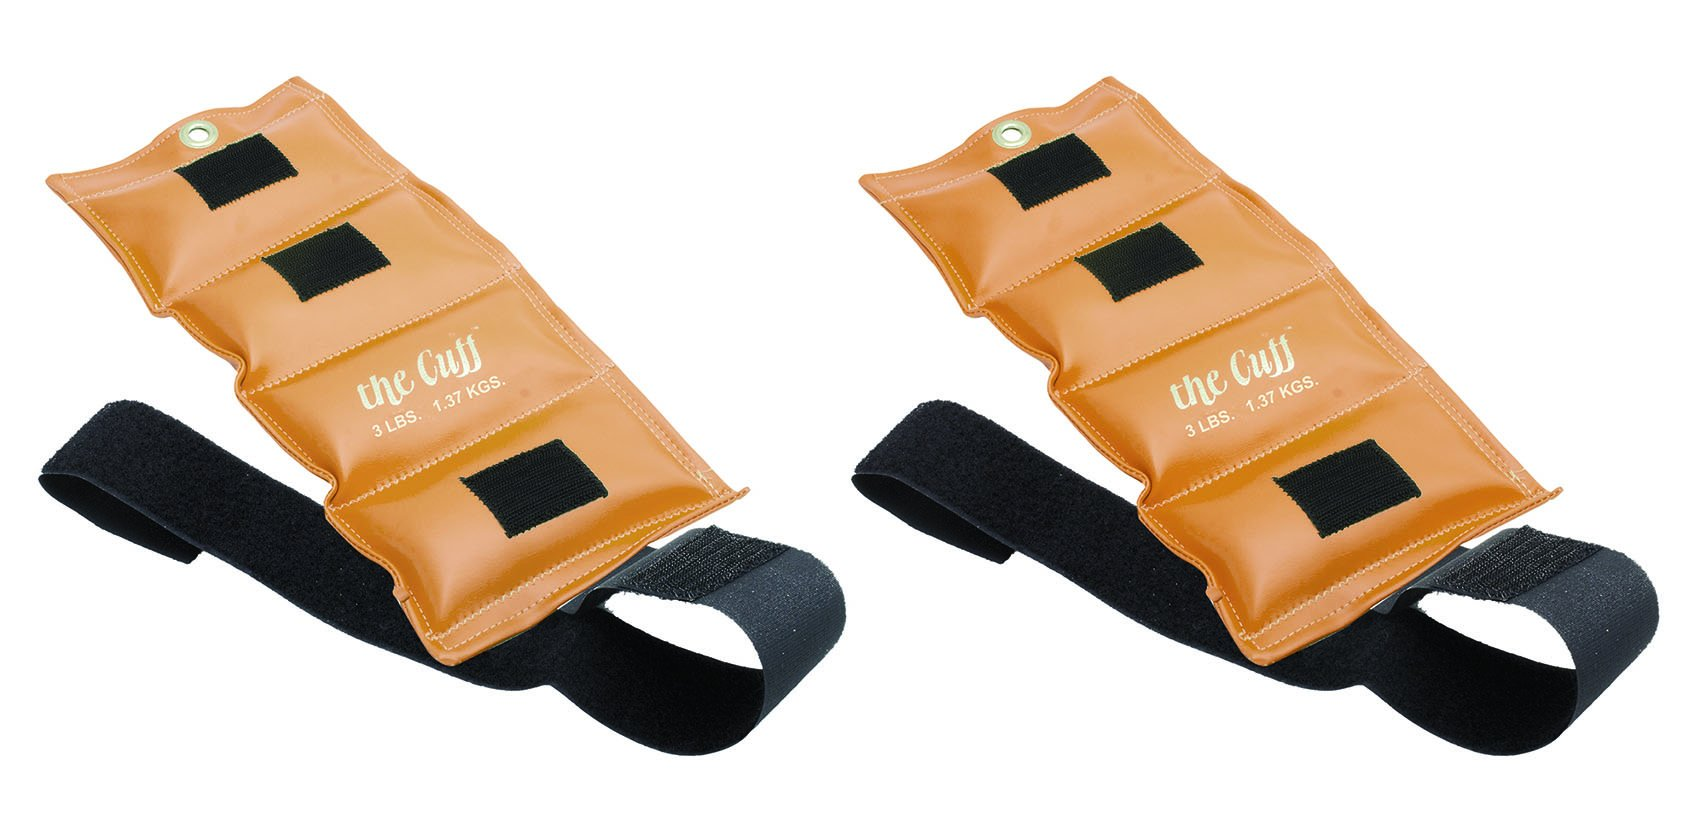 The Cuff Deluxe Ankle and Wrist Weight - 3 pound, Gold - Set of 2